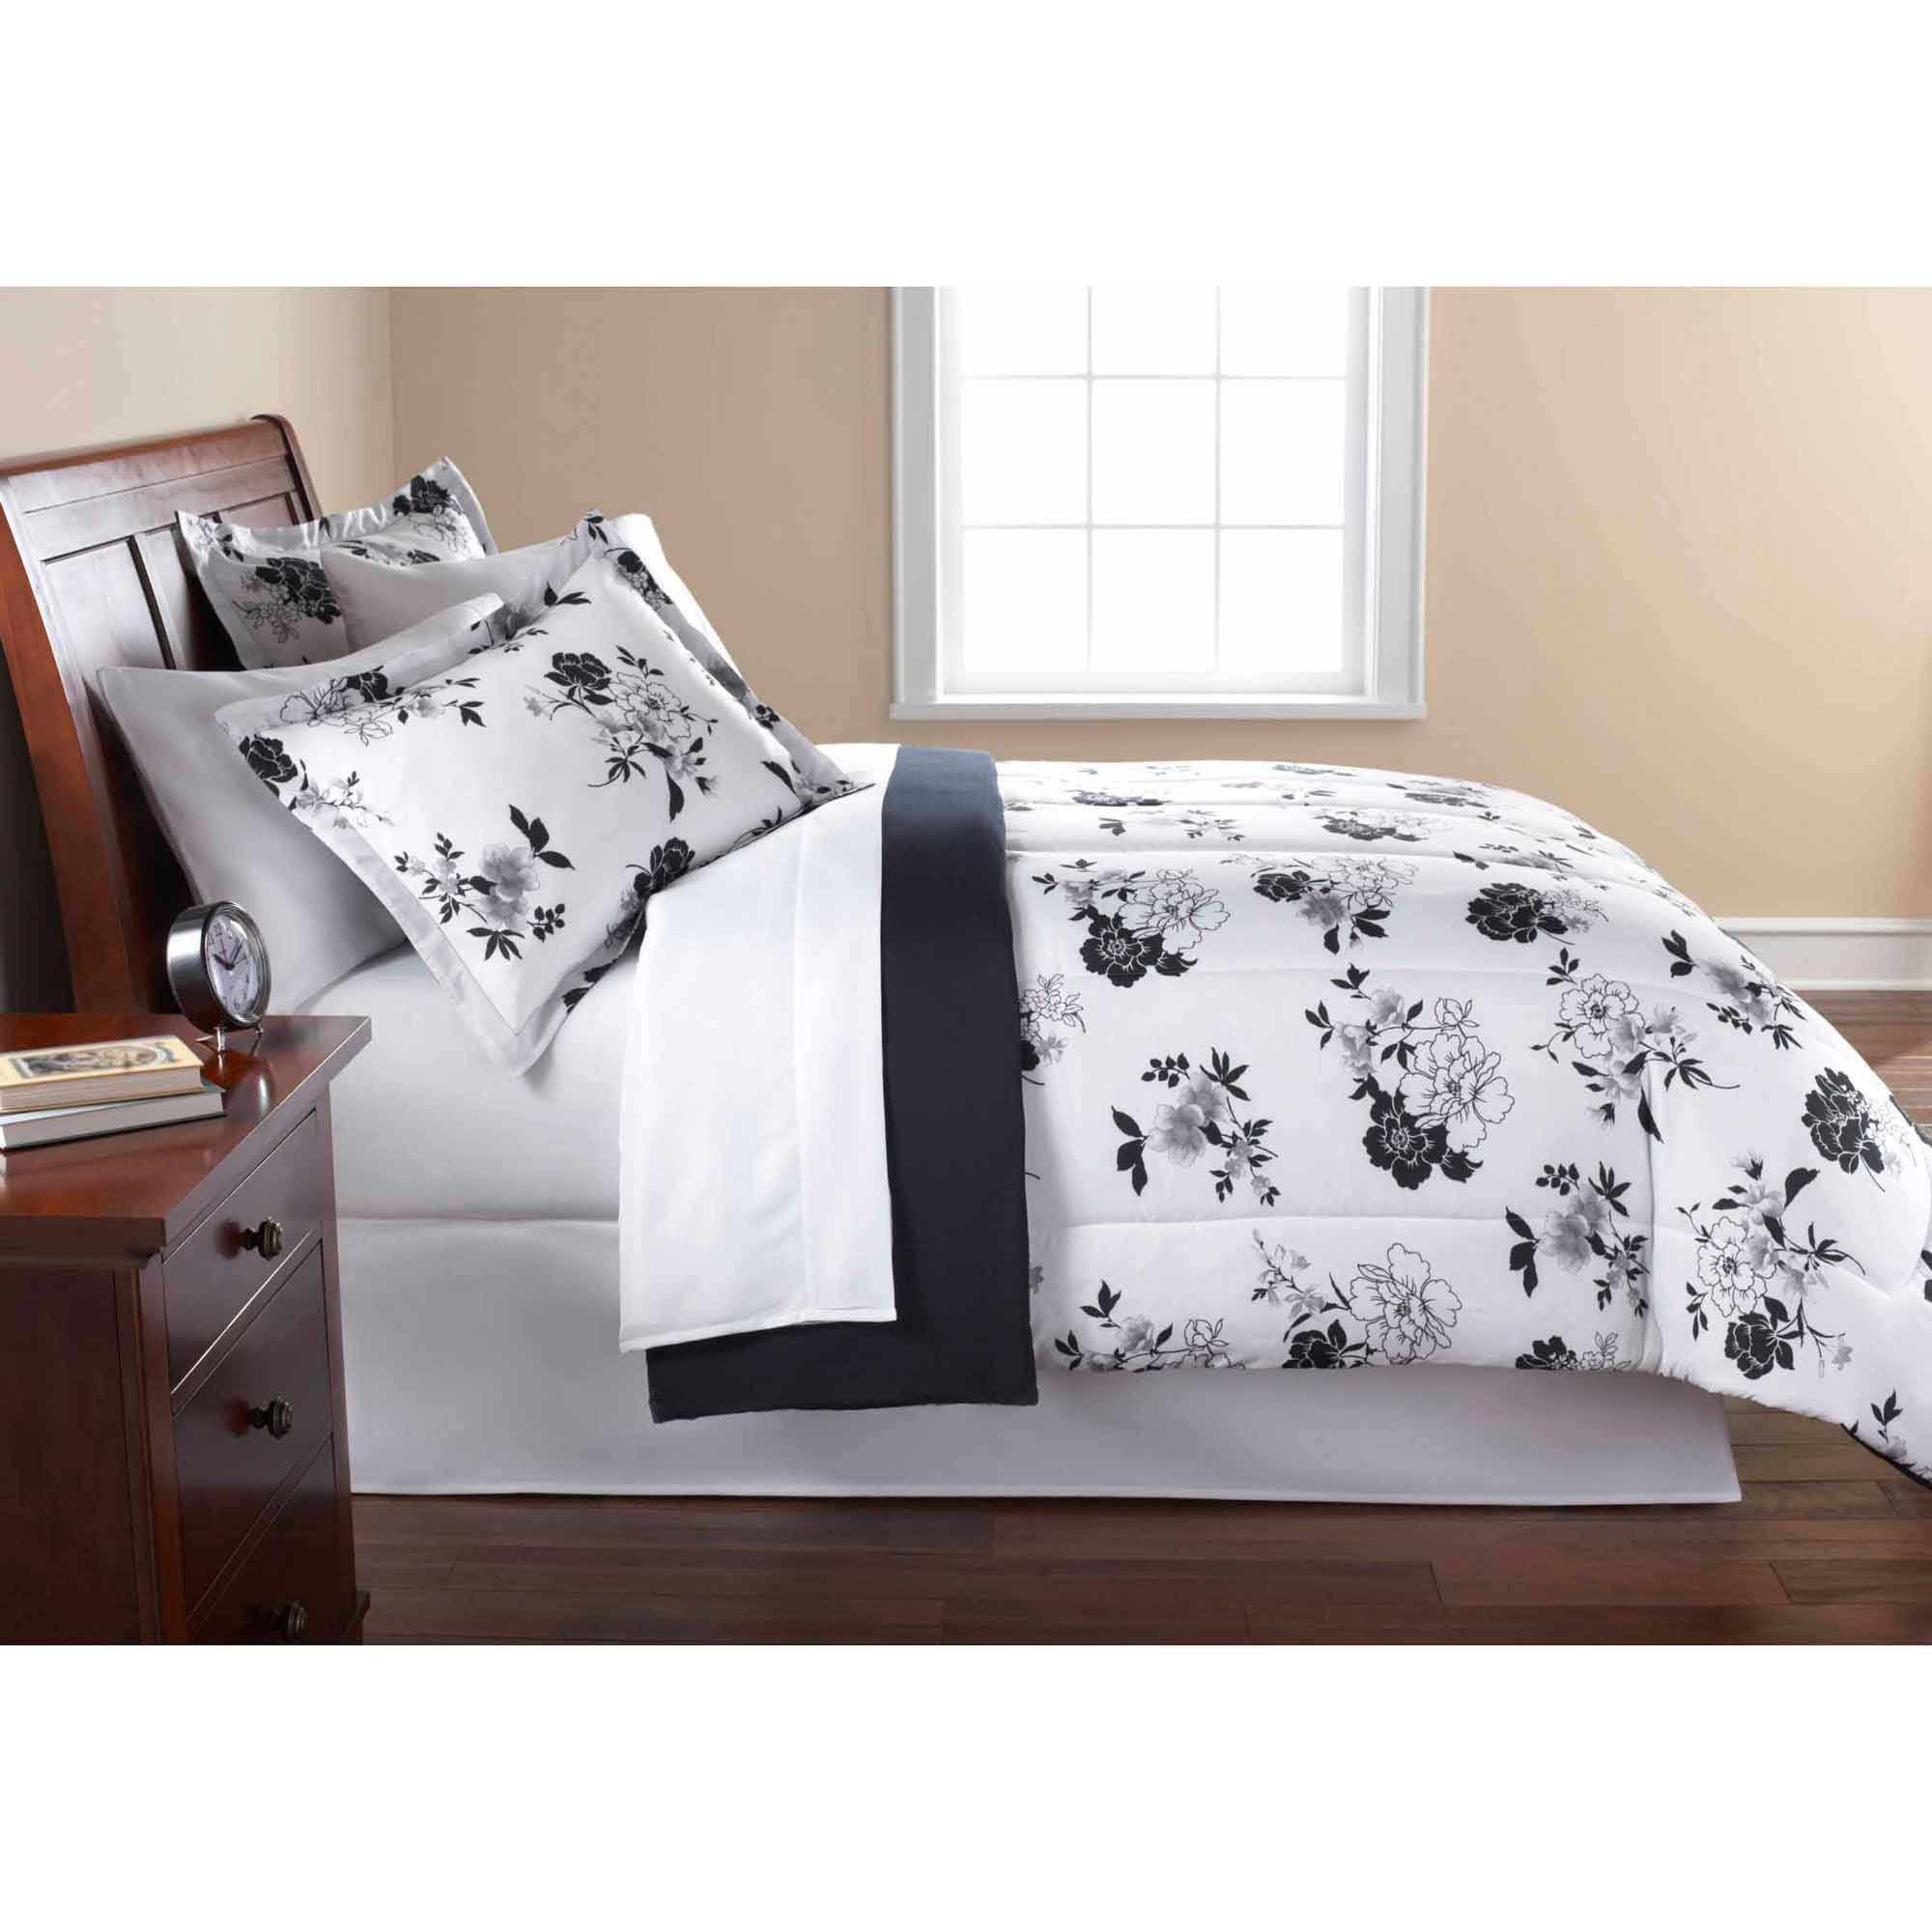 Mainstays Black and White Floral Bed in a Bag Bedding Comforter Set